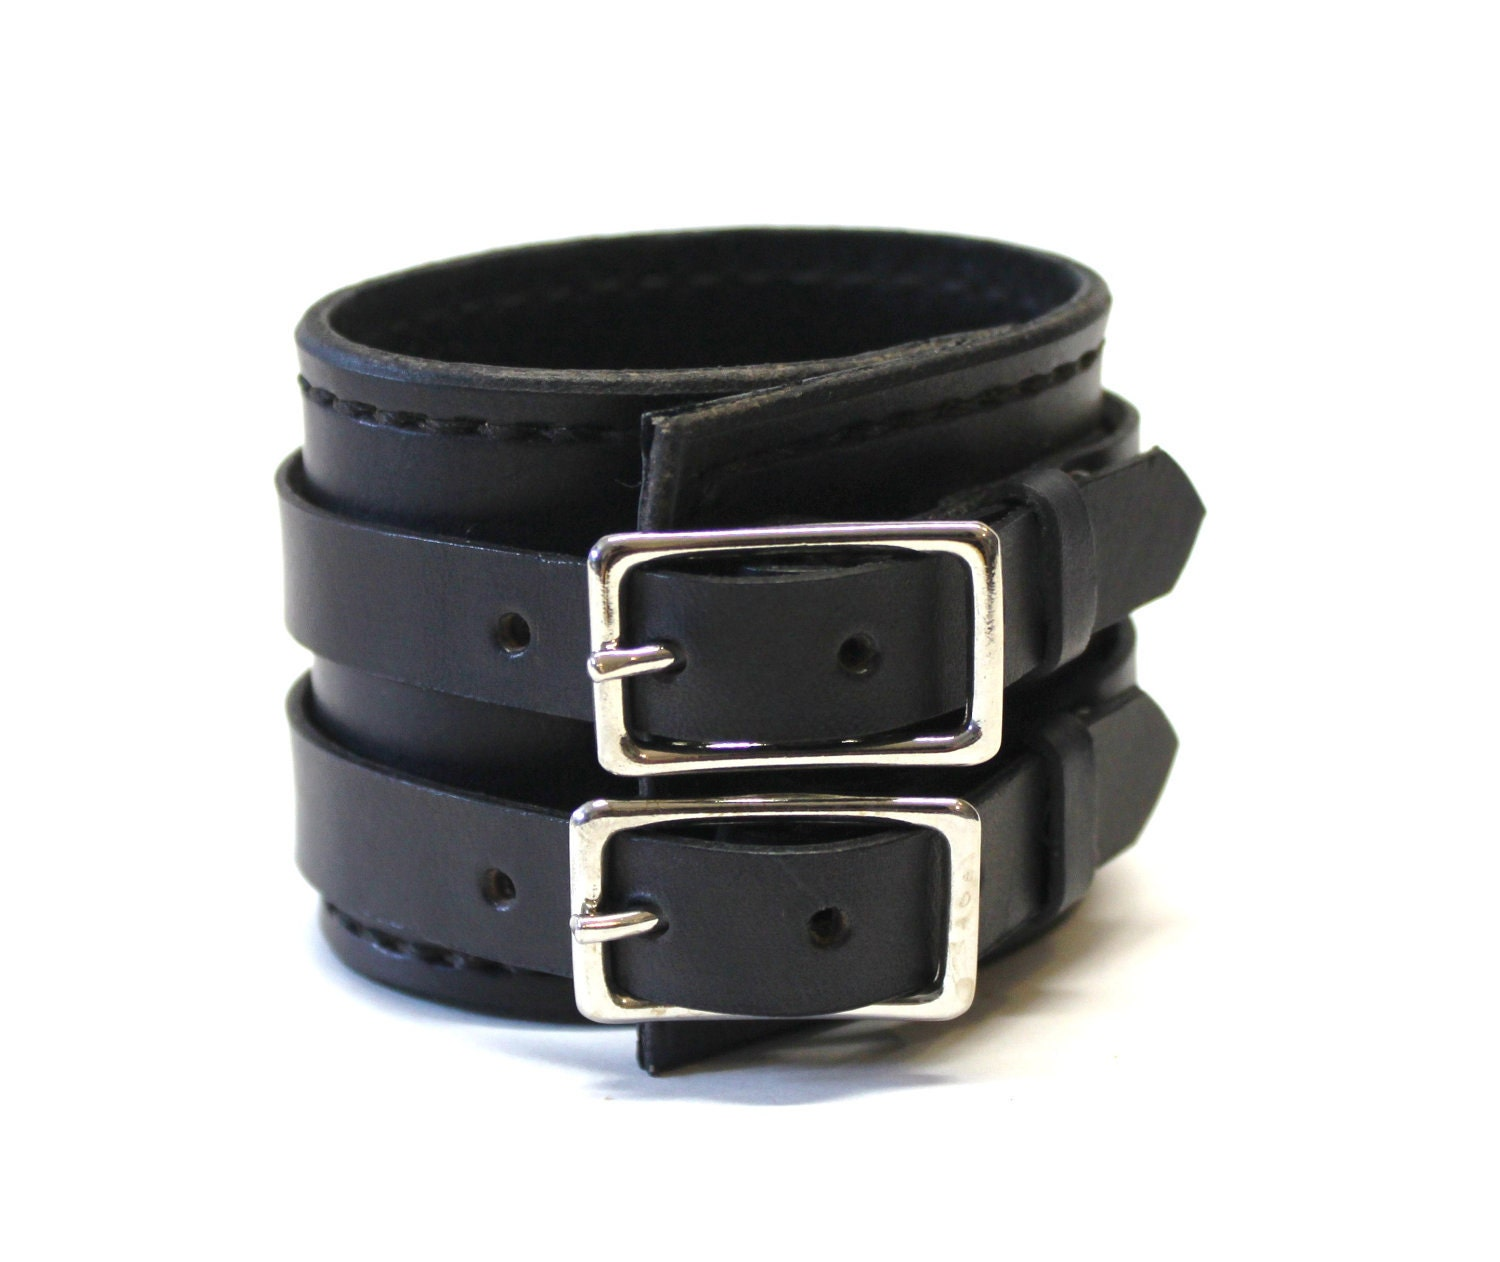 Black Leather Cuff Bracelet Adjustable with Buckles Mens Leather Cuff Womens Leather Cuff